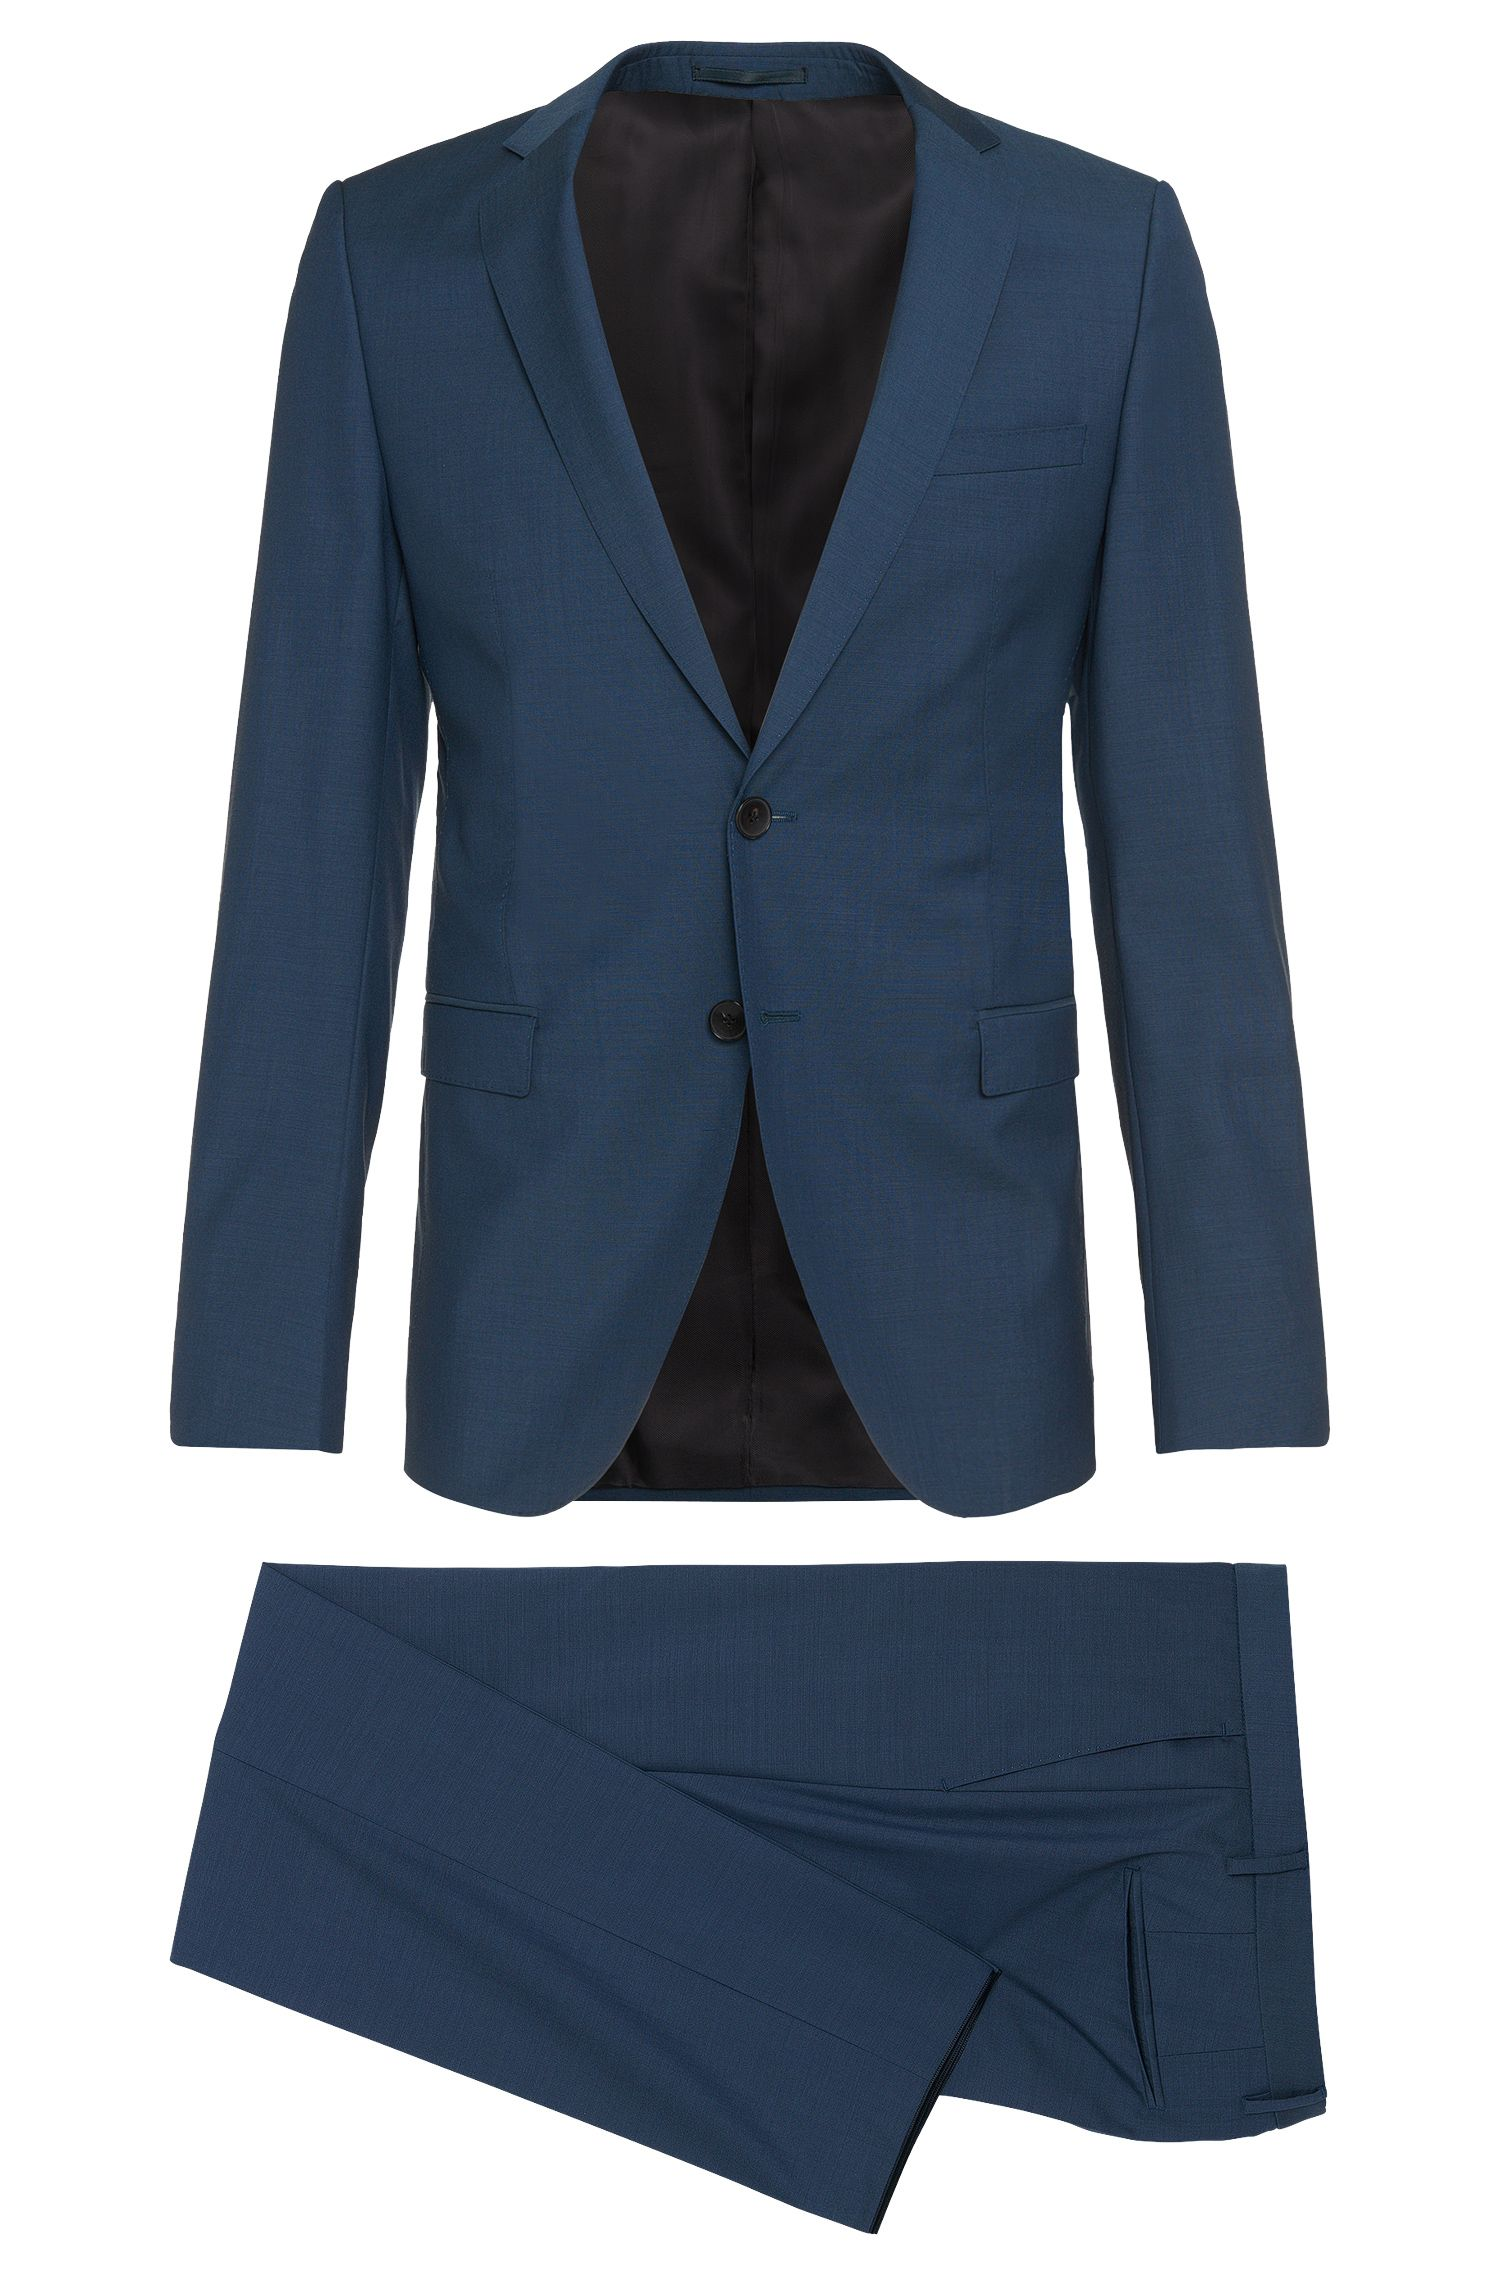 'Rocco/Wyatt' | Extra Slim Fit, Super 130 Virgin Wool Suit